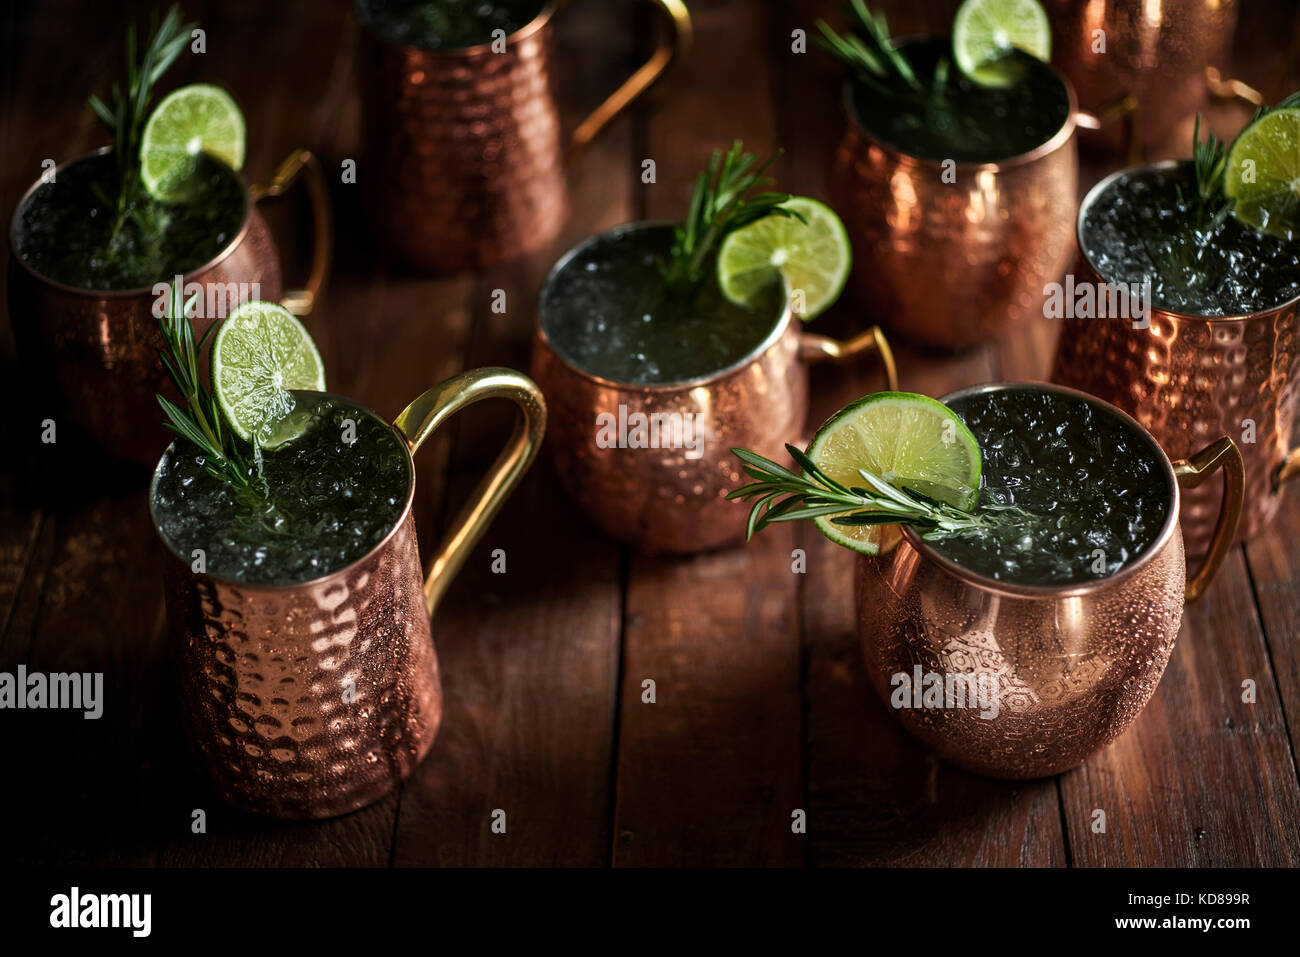 Multiple Stock Photos & Multiple Stock Images - Alamy